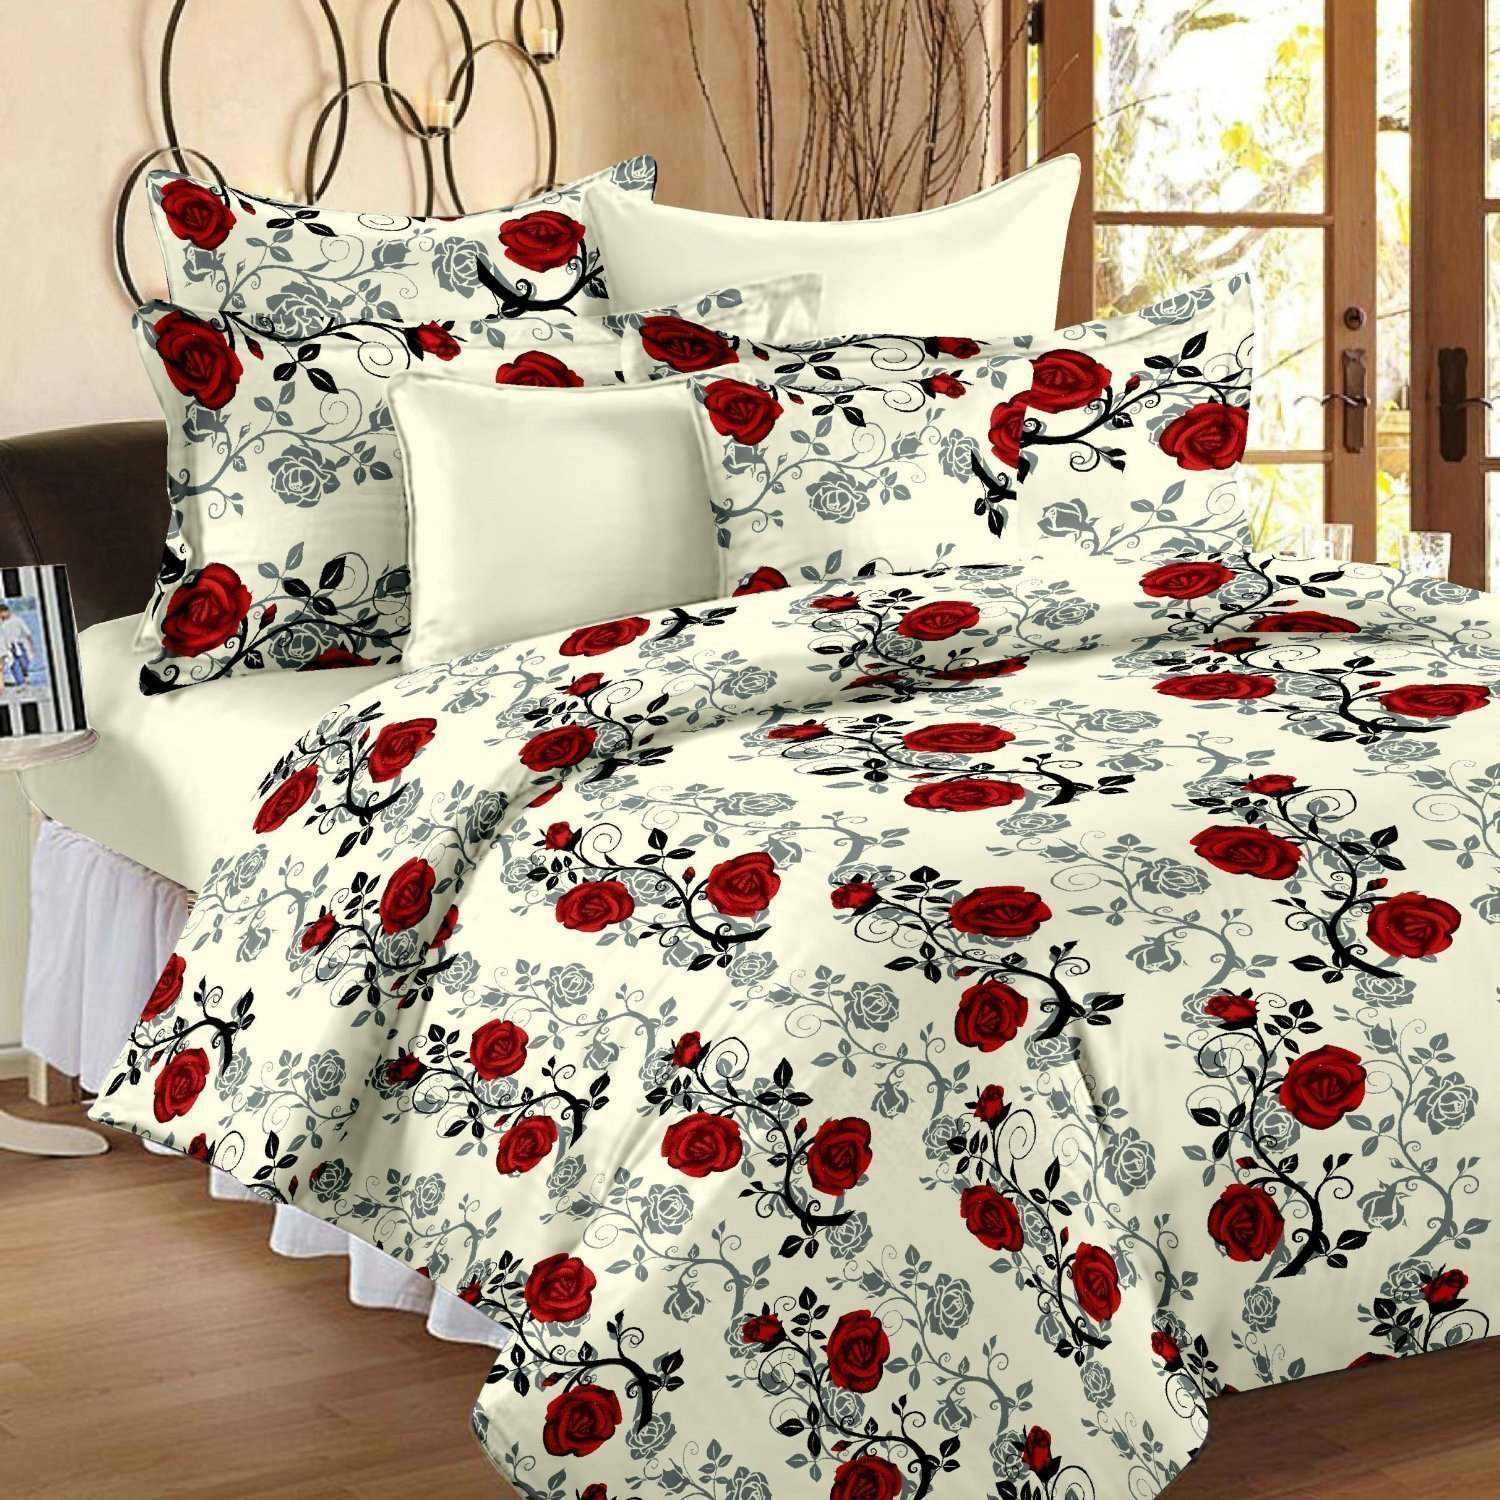 Bed sheets with price - Ahmedabad Cotton Floral 136 Tc Cotton Double Bedsheet With 2 Pillow Covers Checkered Beige And Red